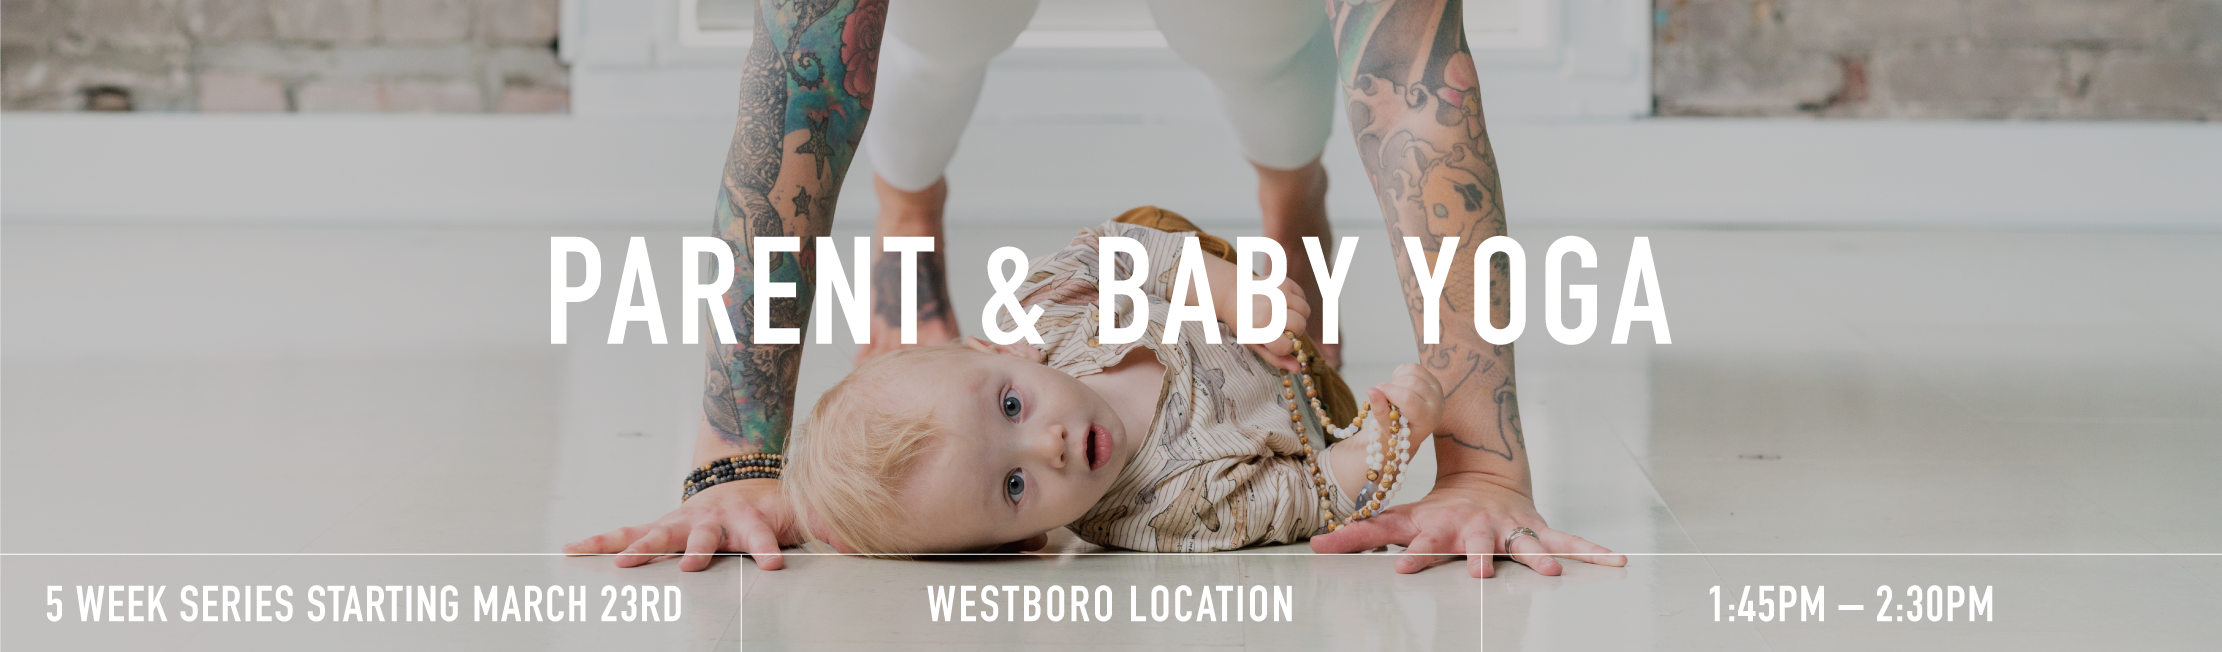 Parent baby yoga banner